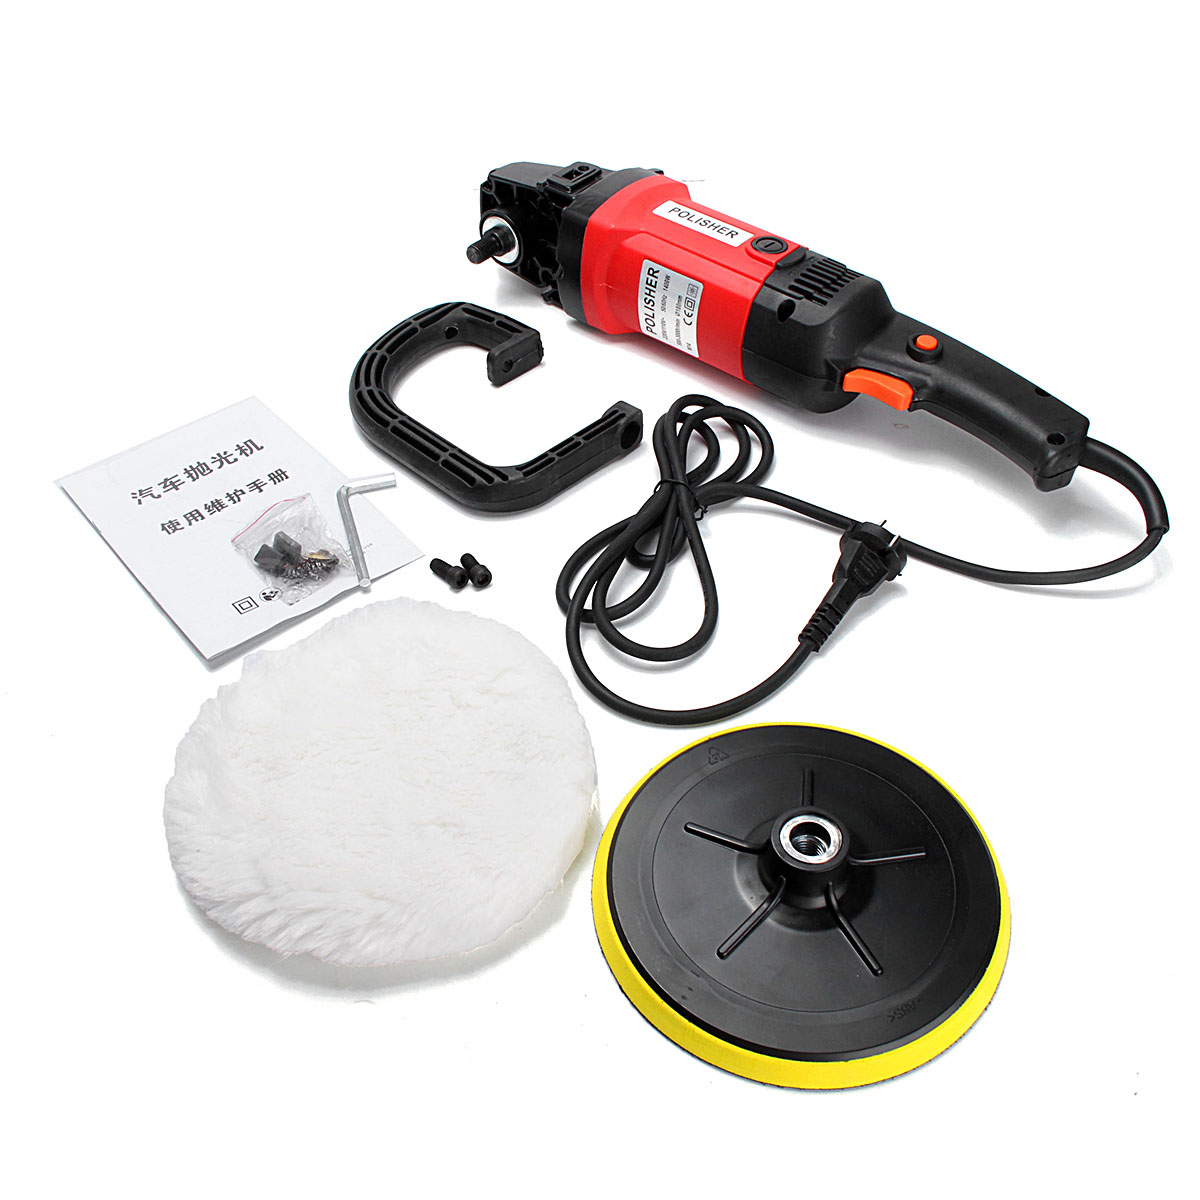 7'' Electric 6 Variable Speed Car Polisher Buffer Waxer Sander Boat with Sponge leaning Polishing Tool car wax wash cleaning polishing expanding sponge pad yellow